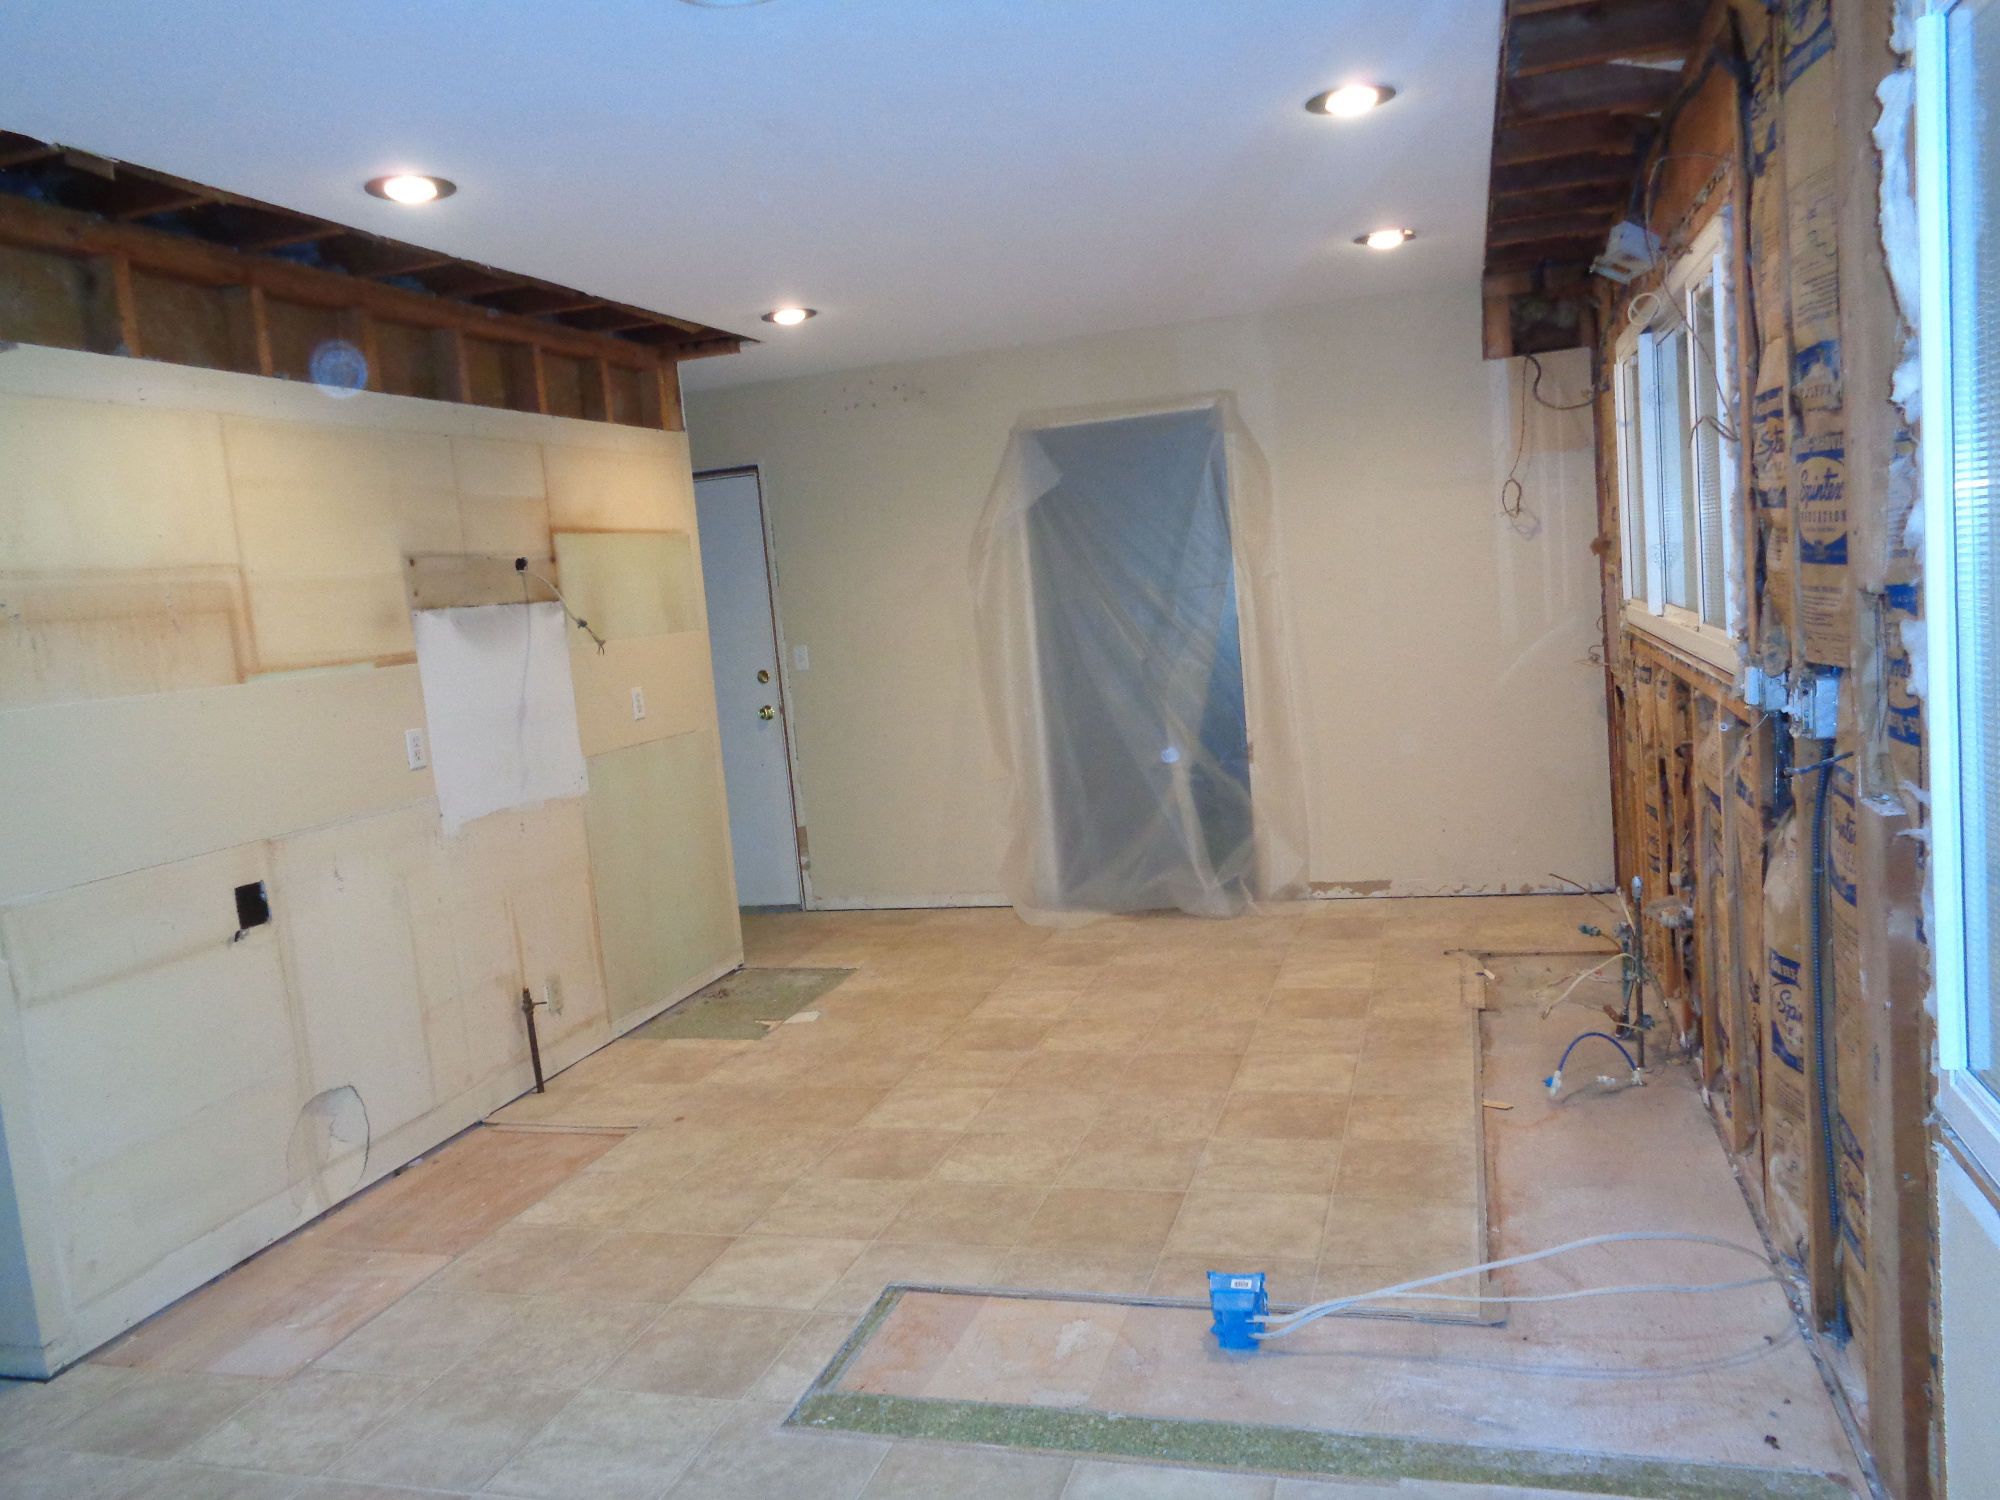 Waukesha Bathroom Remodeling Kitchen Remodeling Home Remodelers - How much to remodel a kitchen and bathroom